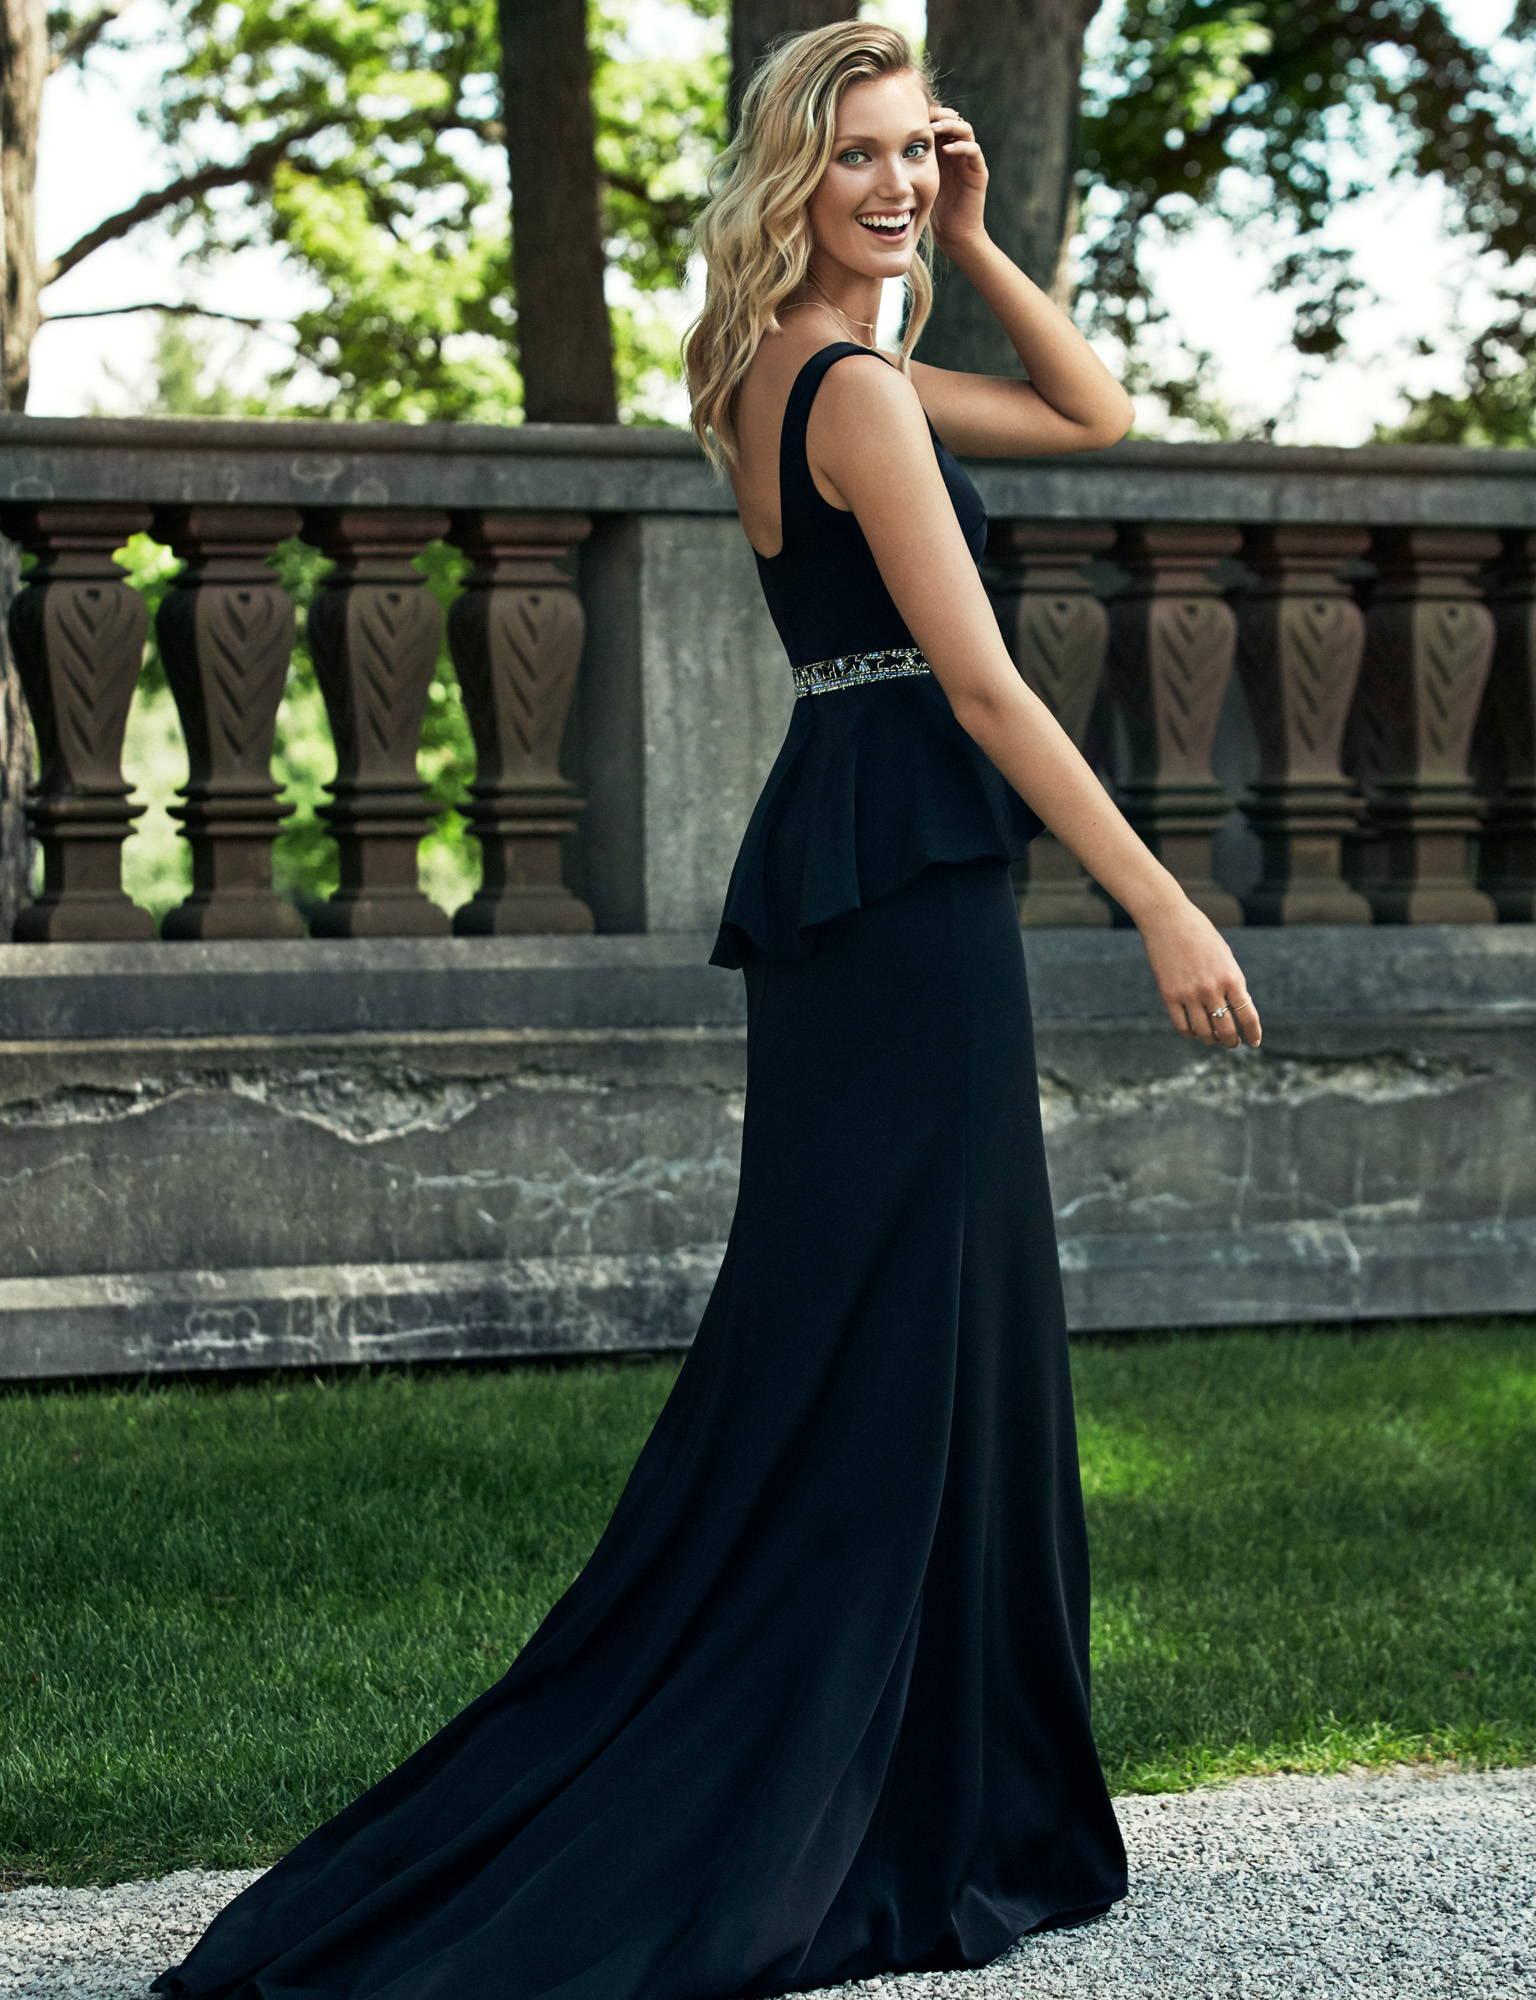 Shop Wedding Guest Dresses Up to 90% Off